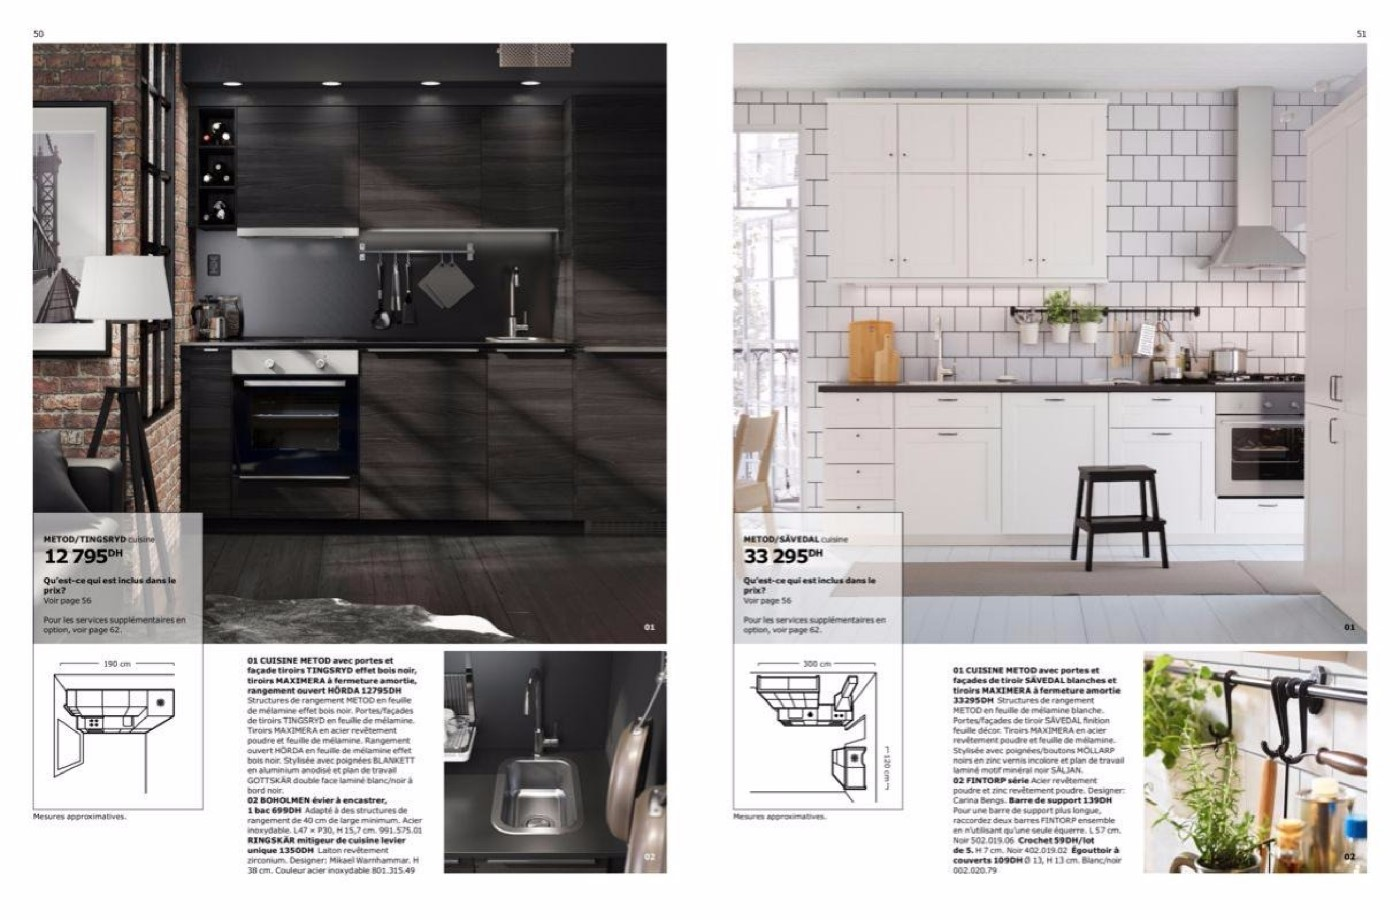 soldes cuisines ikea awesome cuisines hygena catalogue fcuisine hygena soldes cuisine acquipace. Black Bedroom Furniture Sets. Home Design Ideas